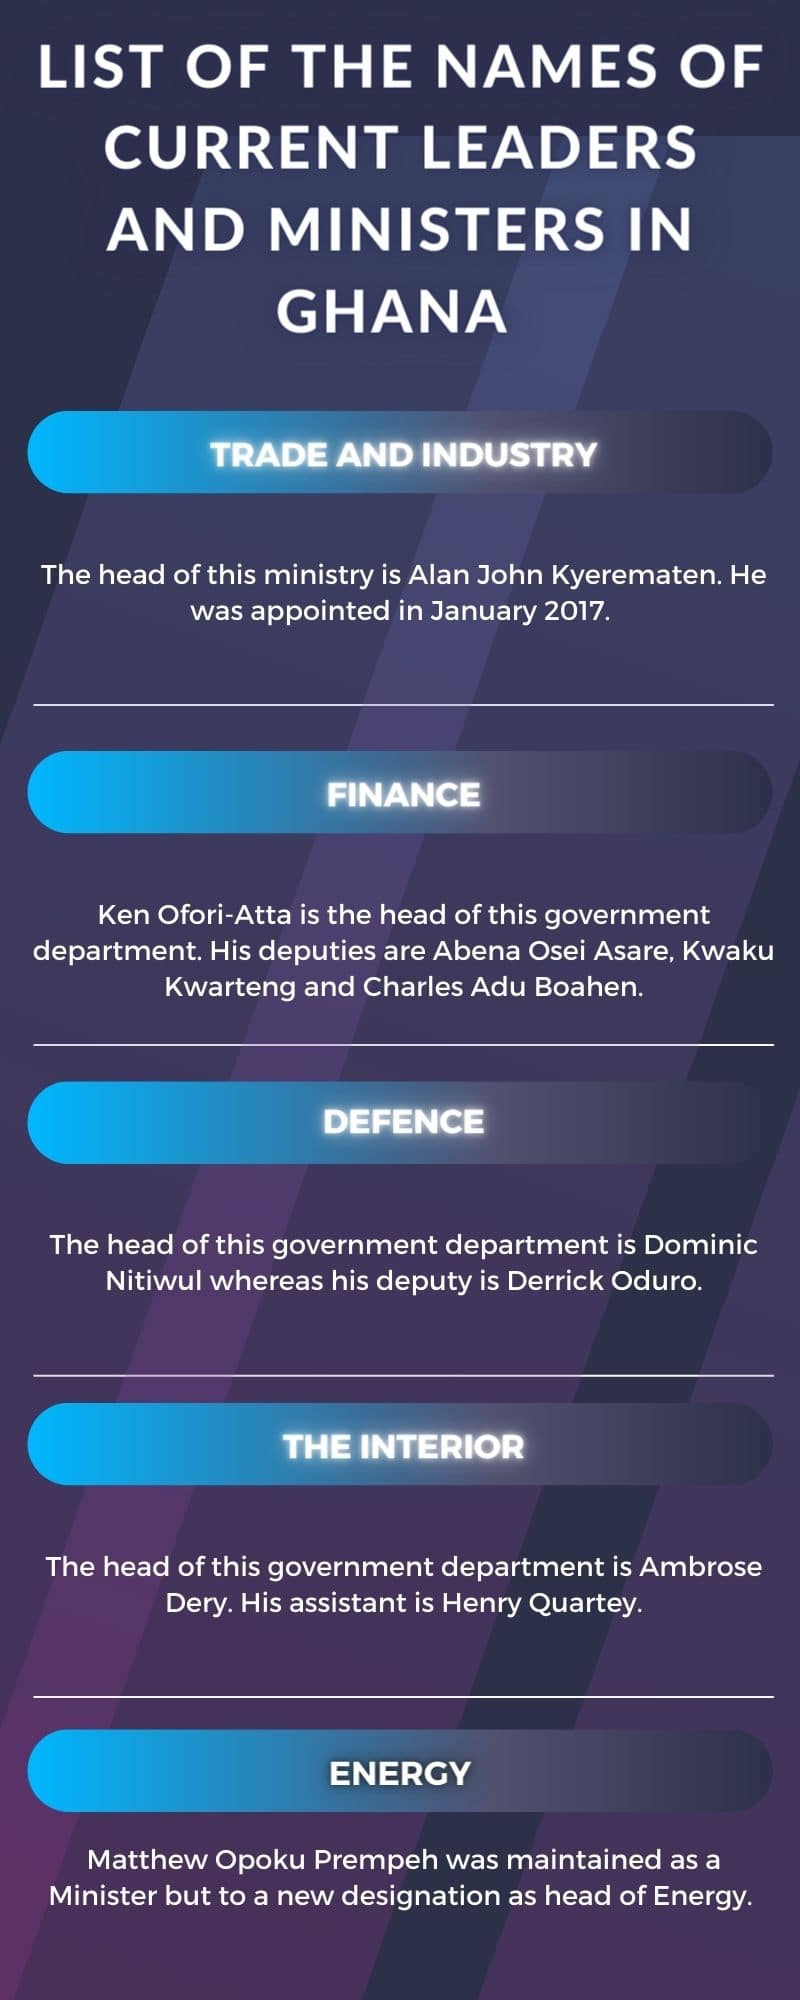 names of current leaders and ministers in Ghana